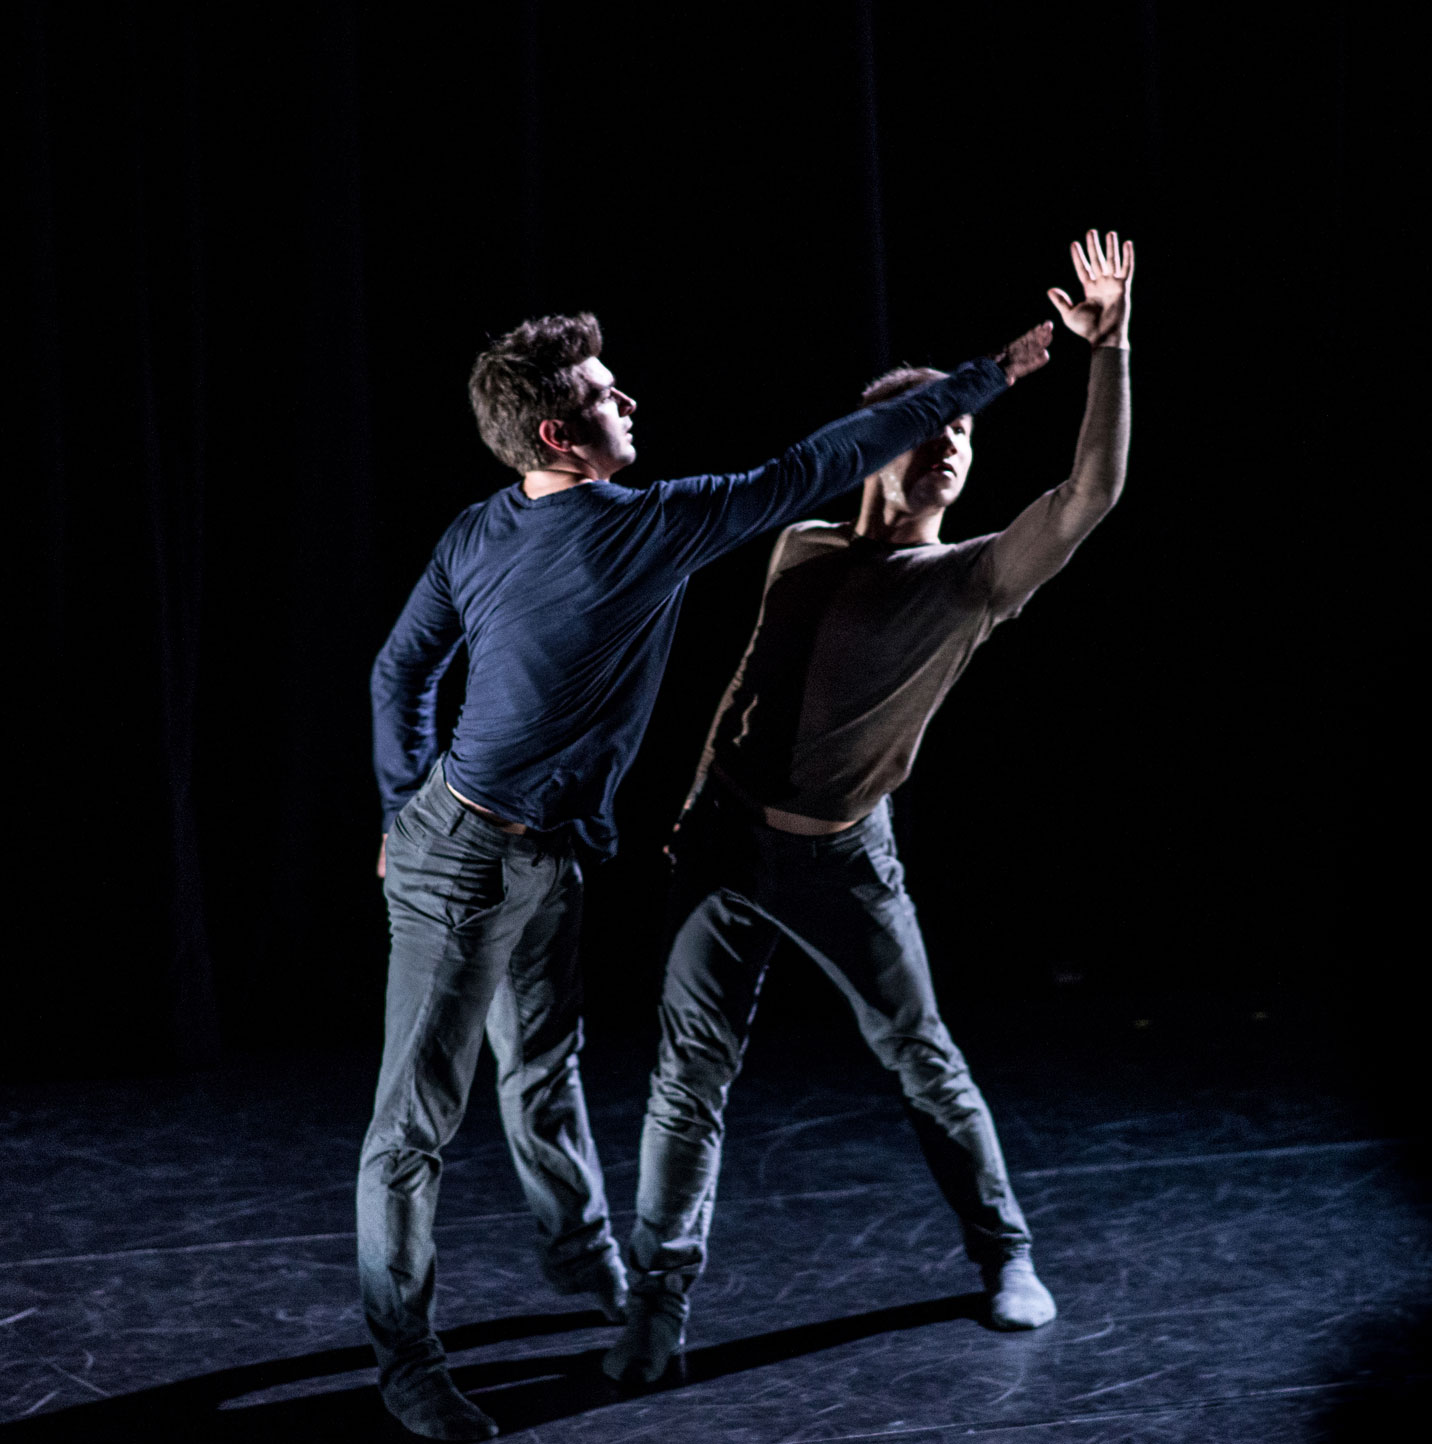 Dance artists perform Saudade as part of Joshua Beamish/MOVETHECOMPANY